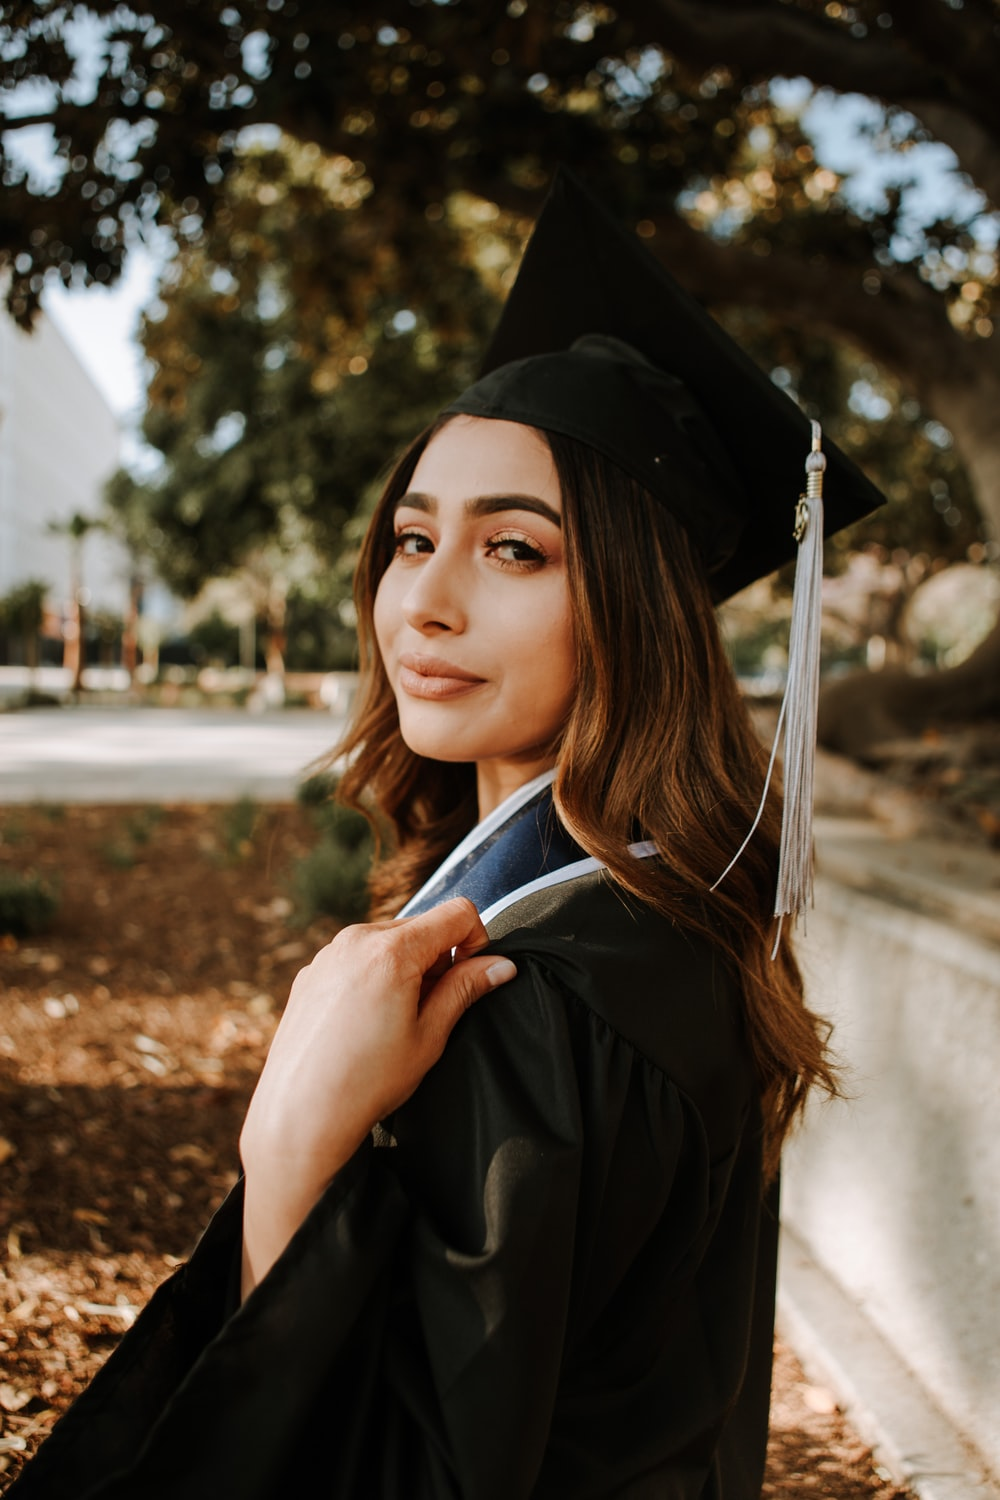 woman in black graduation gown with black mortar board